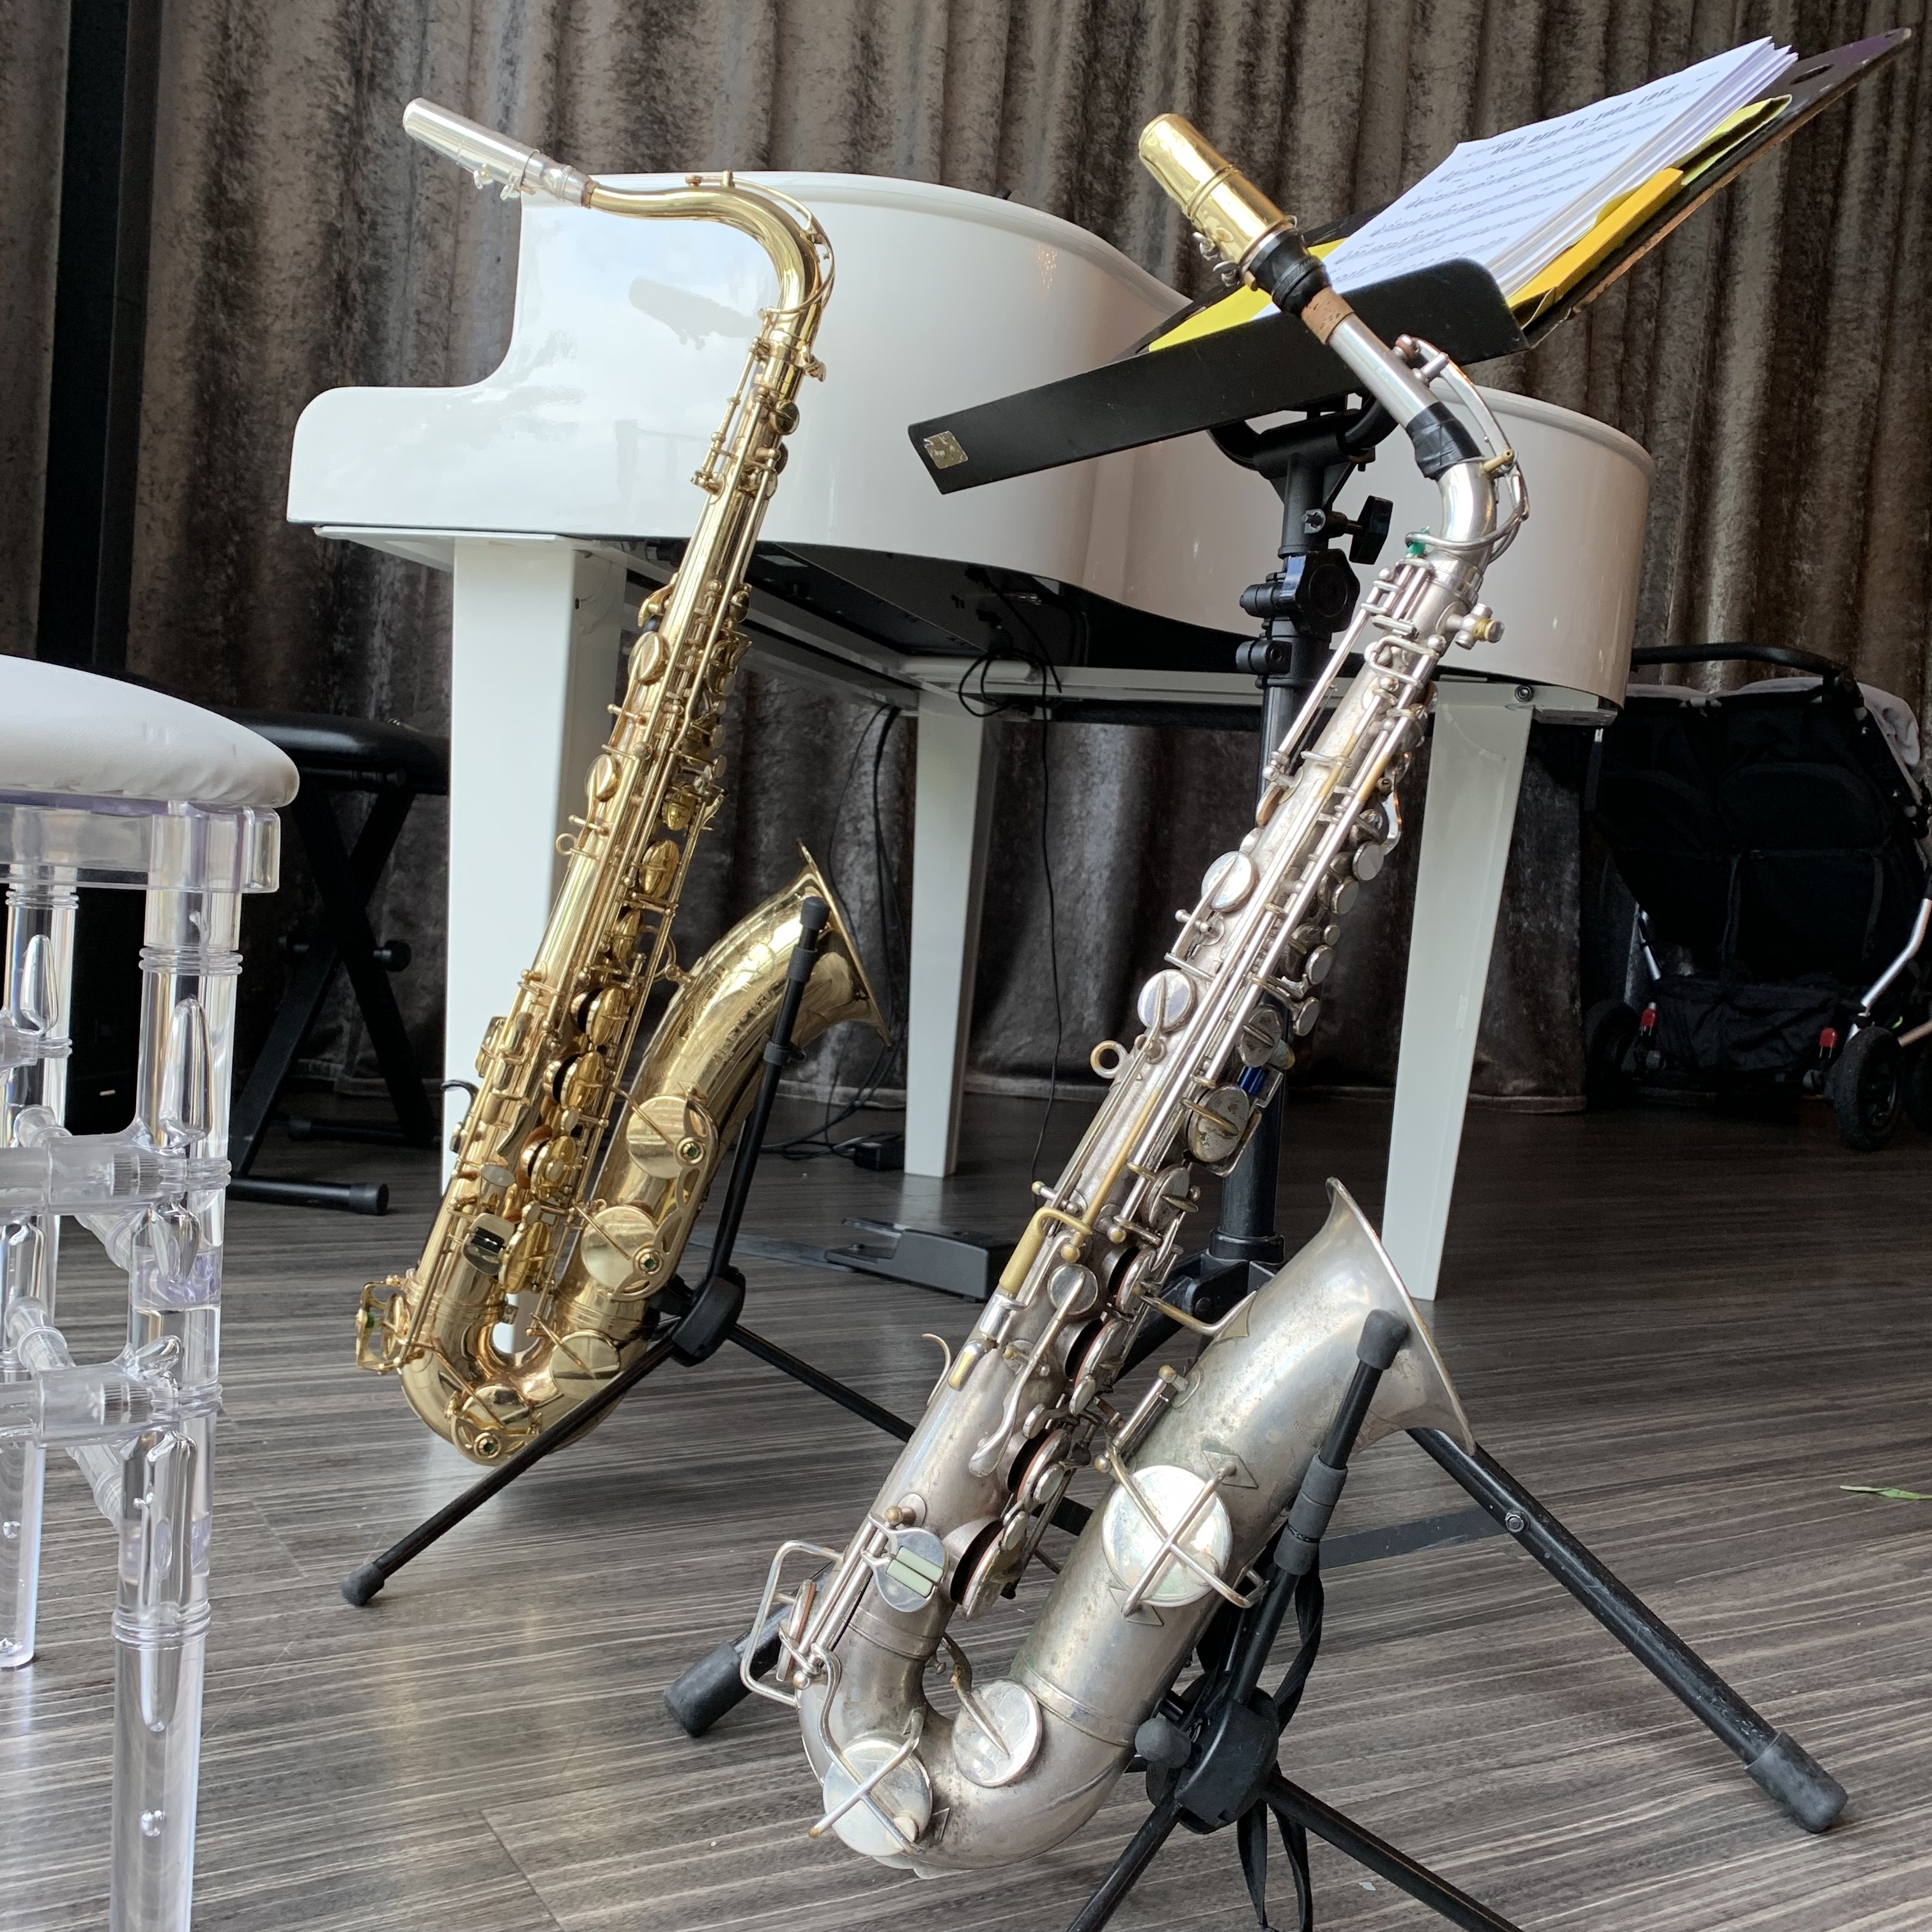 Merrydale Manor saxophone and piano